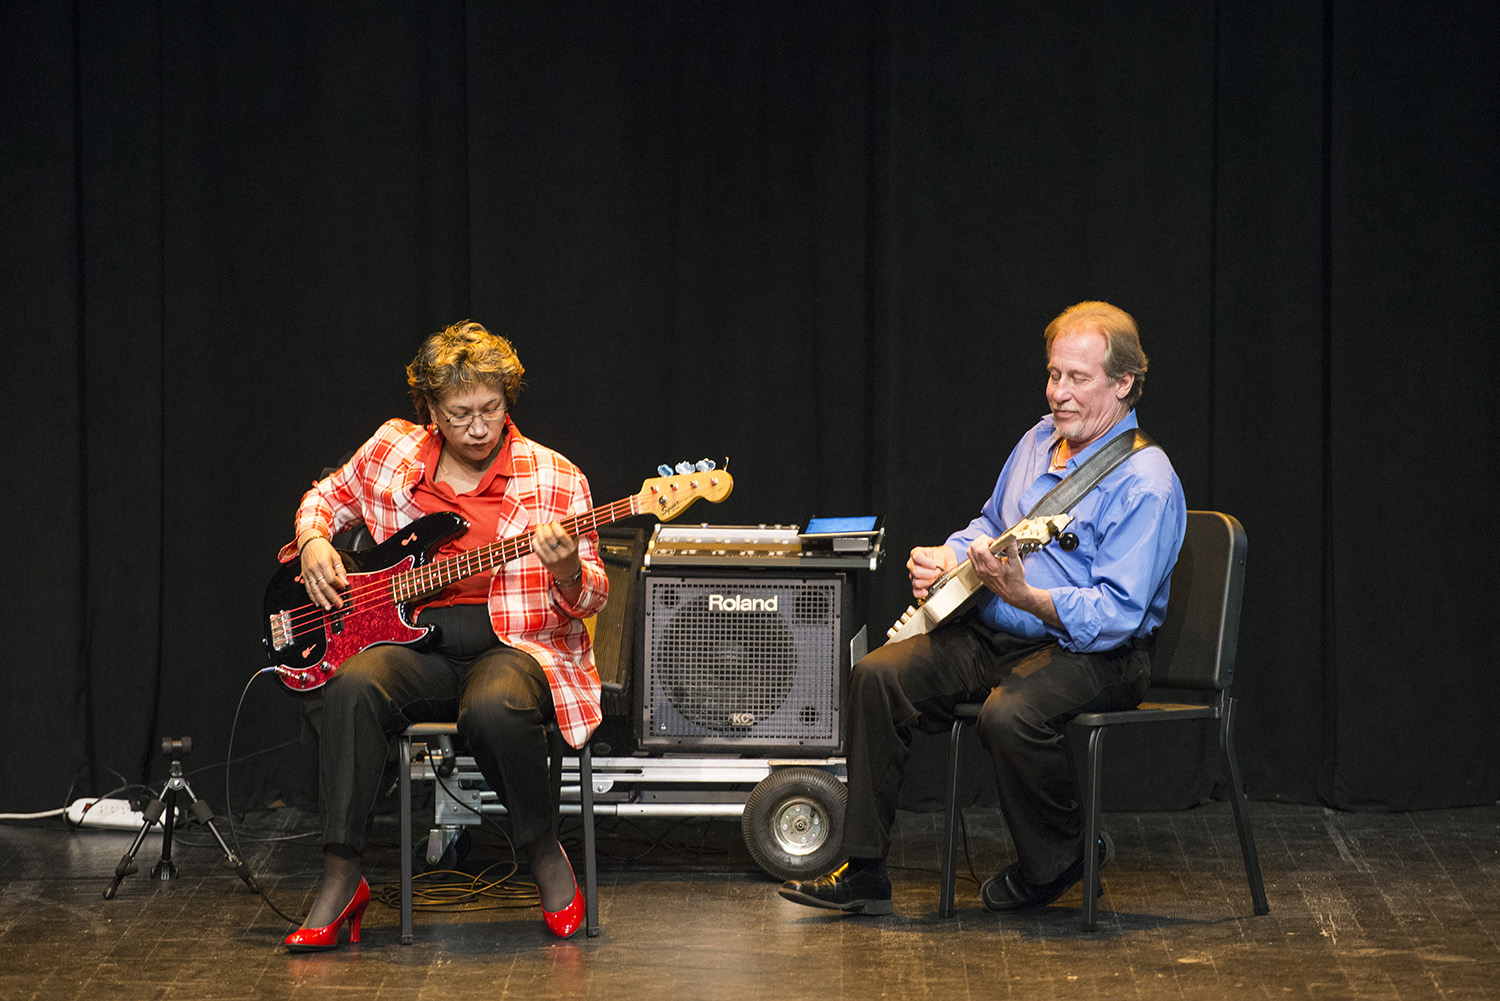 A female music student performs onstage with a guitar with instructor Paul Freeburn, also on guitar.